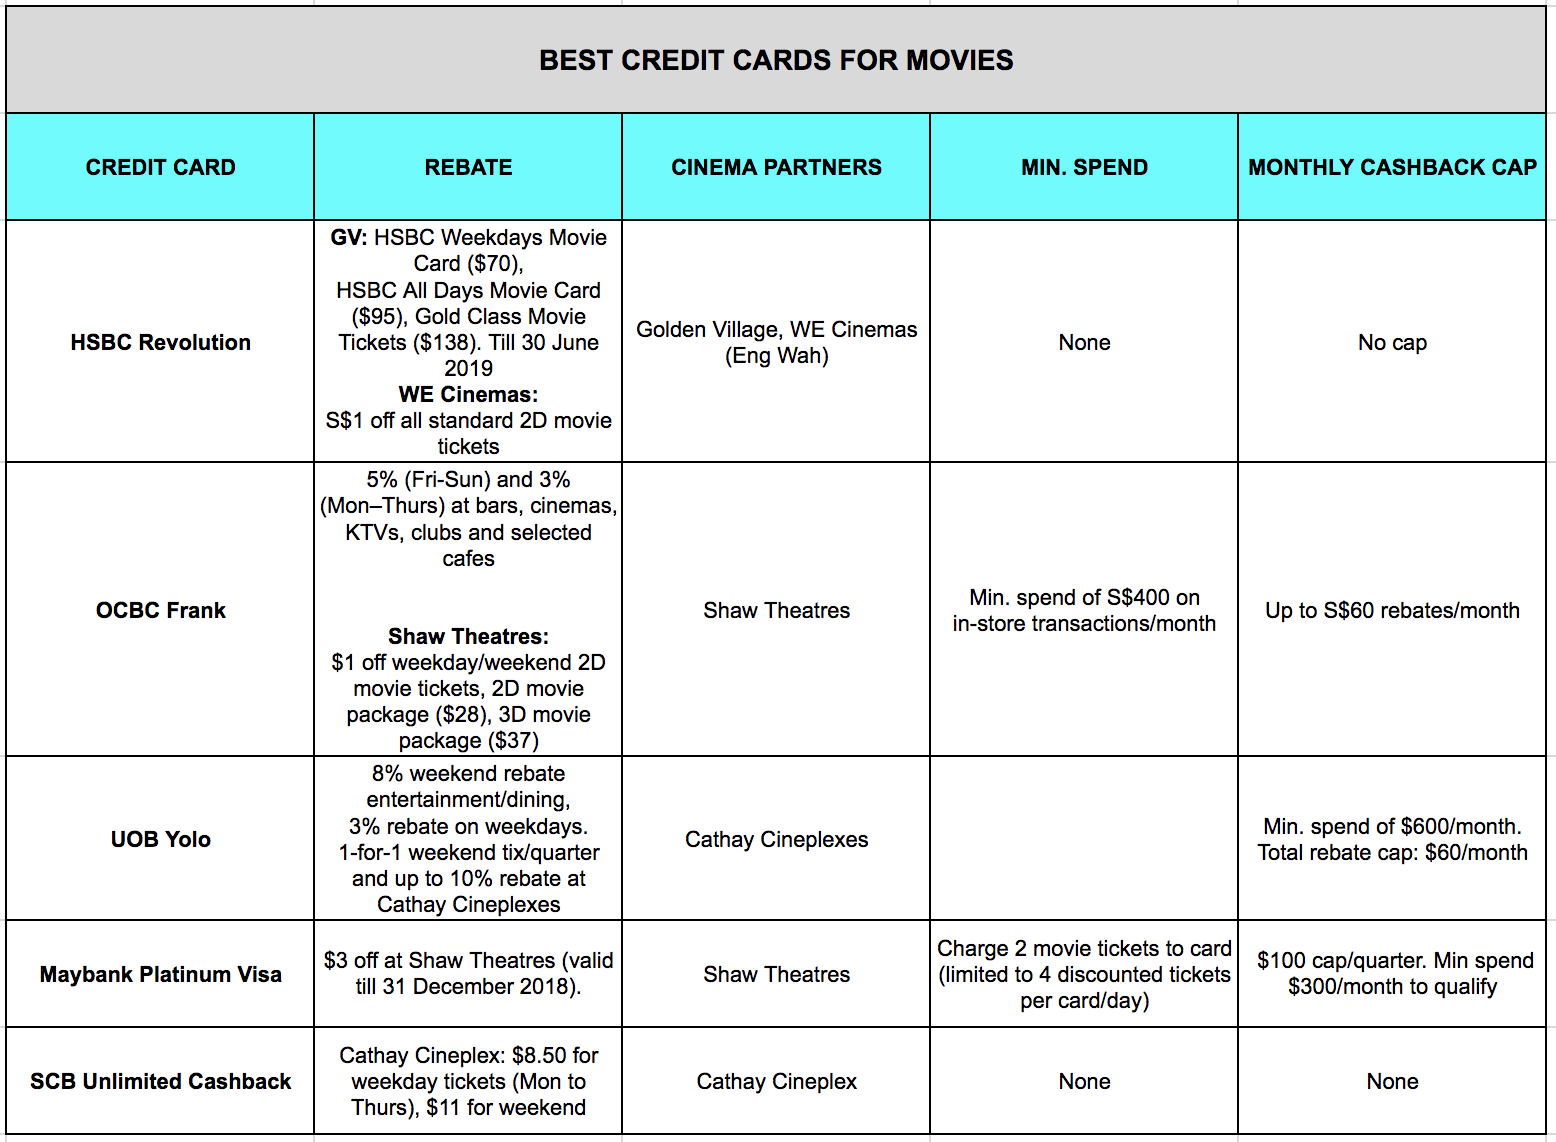 Best credit cards for movies in Singapore